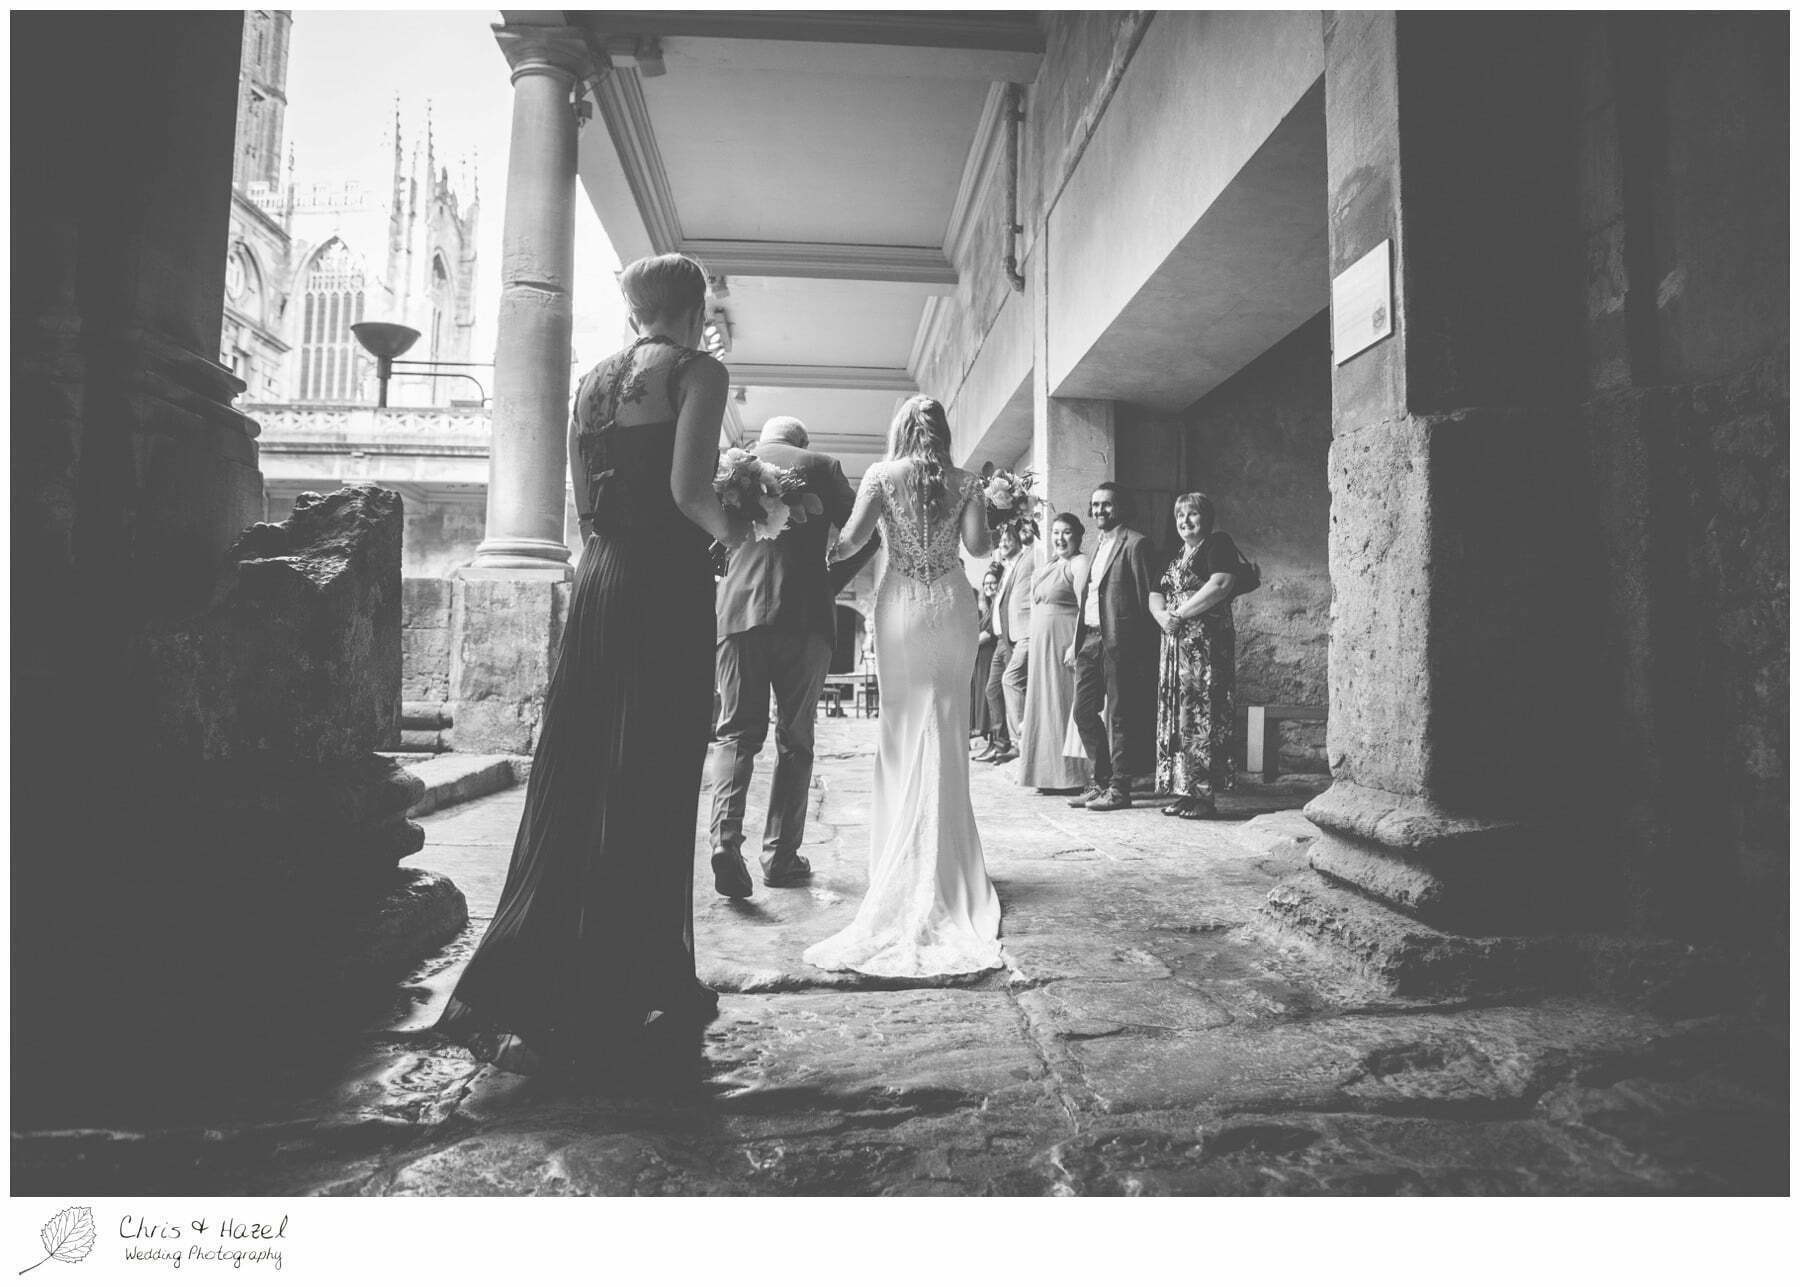 Bride walking down aisle at Roman Baths Pump Rooms, The Roman Baths Wedding Photography, Roman Baths Wedding Photographer, Wedding in Bath, Bath Wedding Day, documentary wedding photography, Chris and Hazel Wedding Photography Bath, Andy Frost Sian Upson